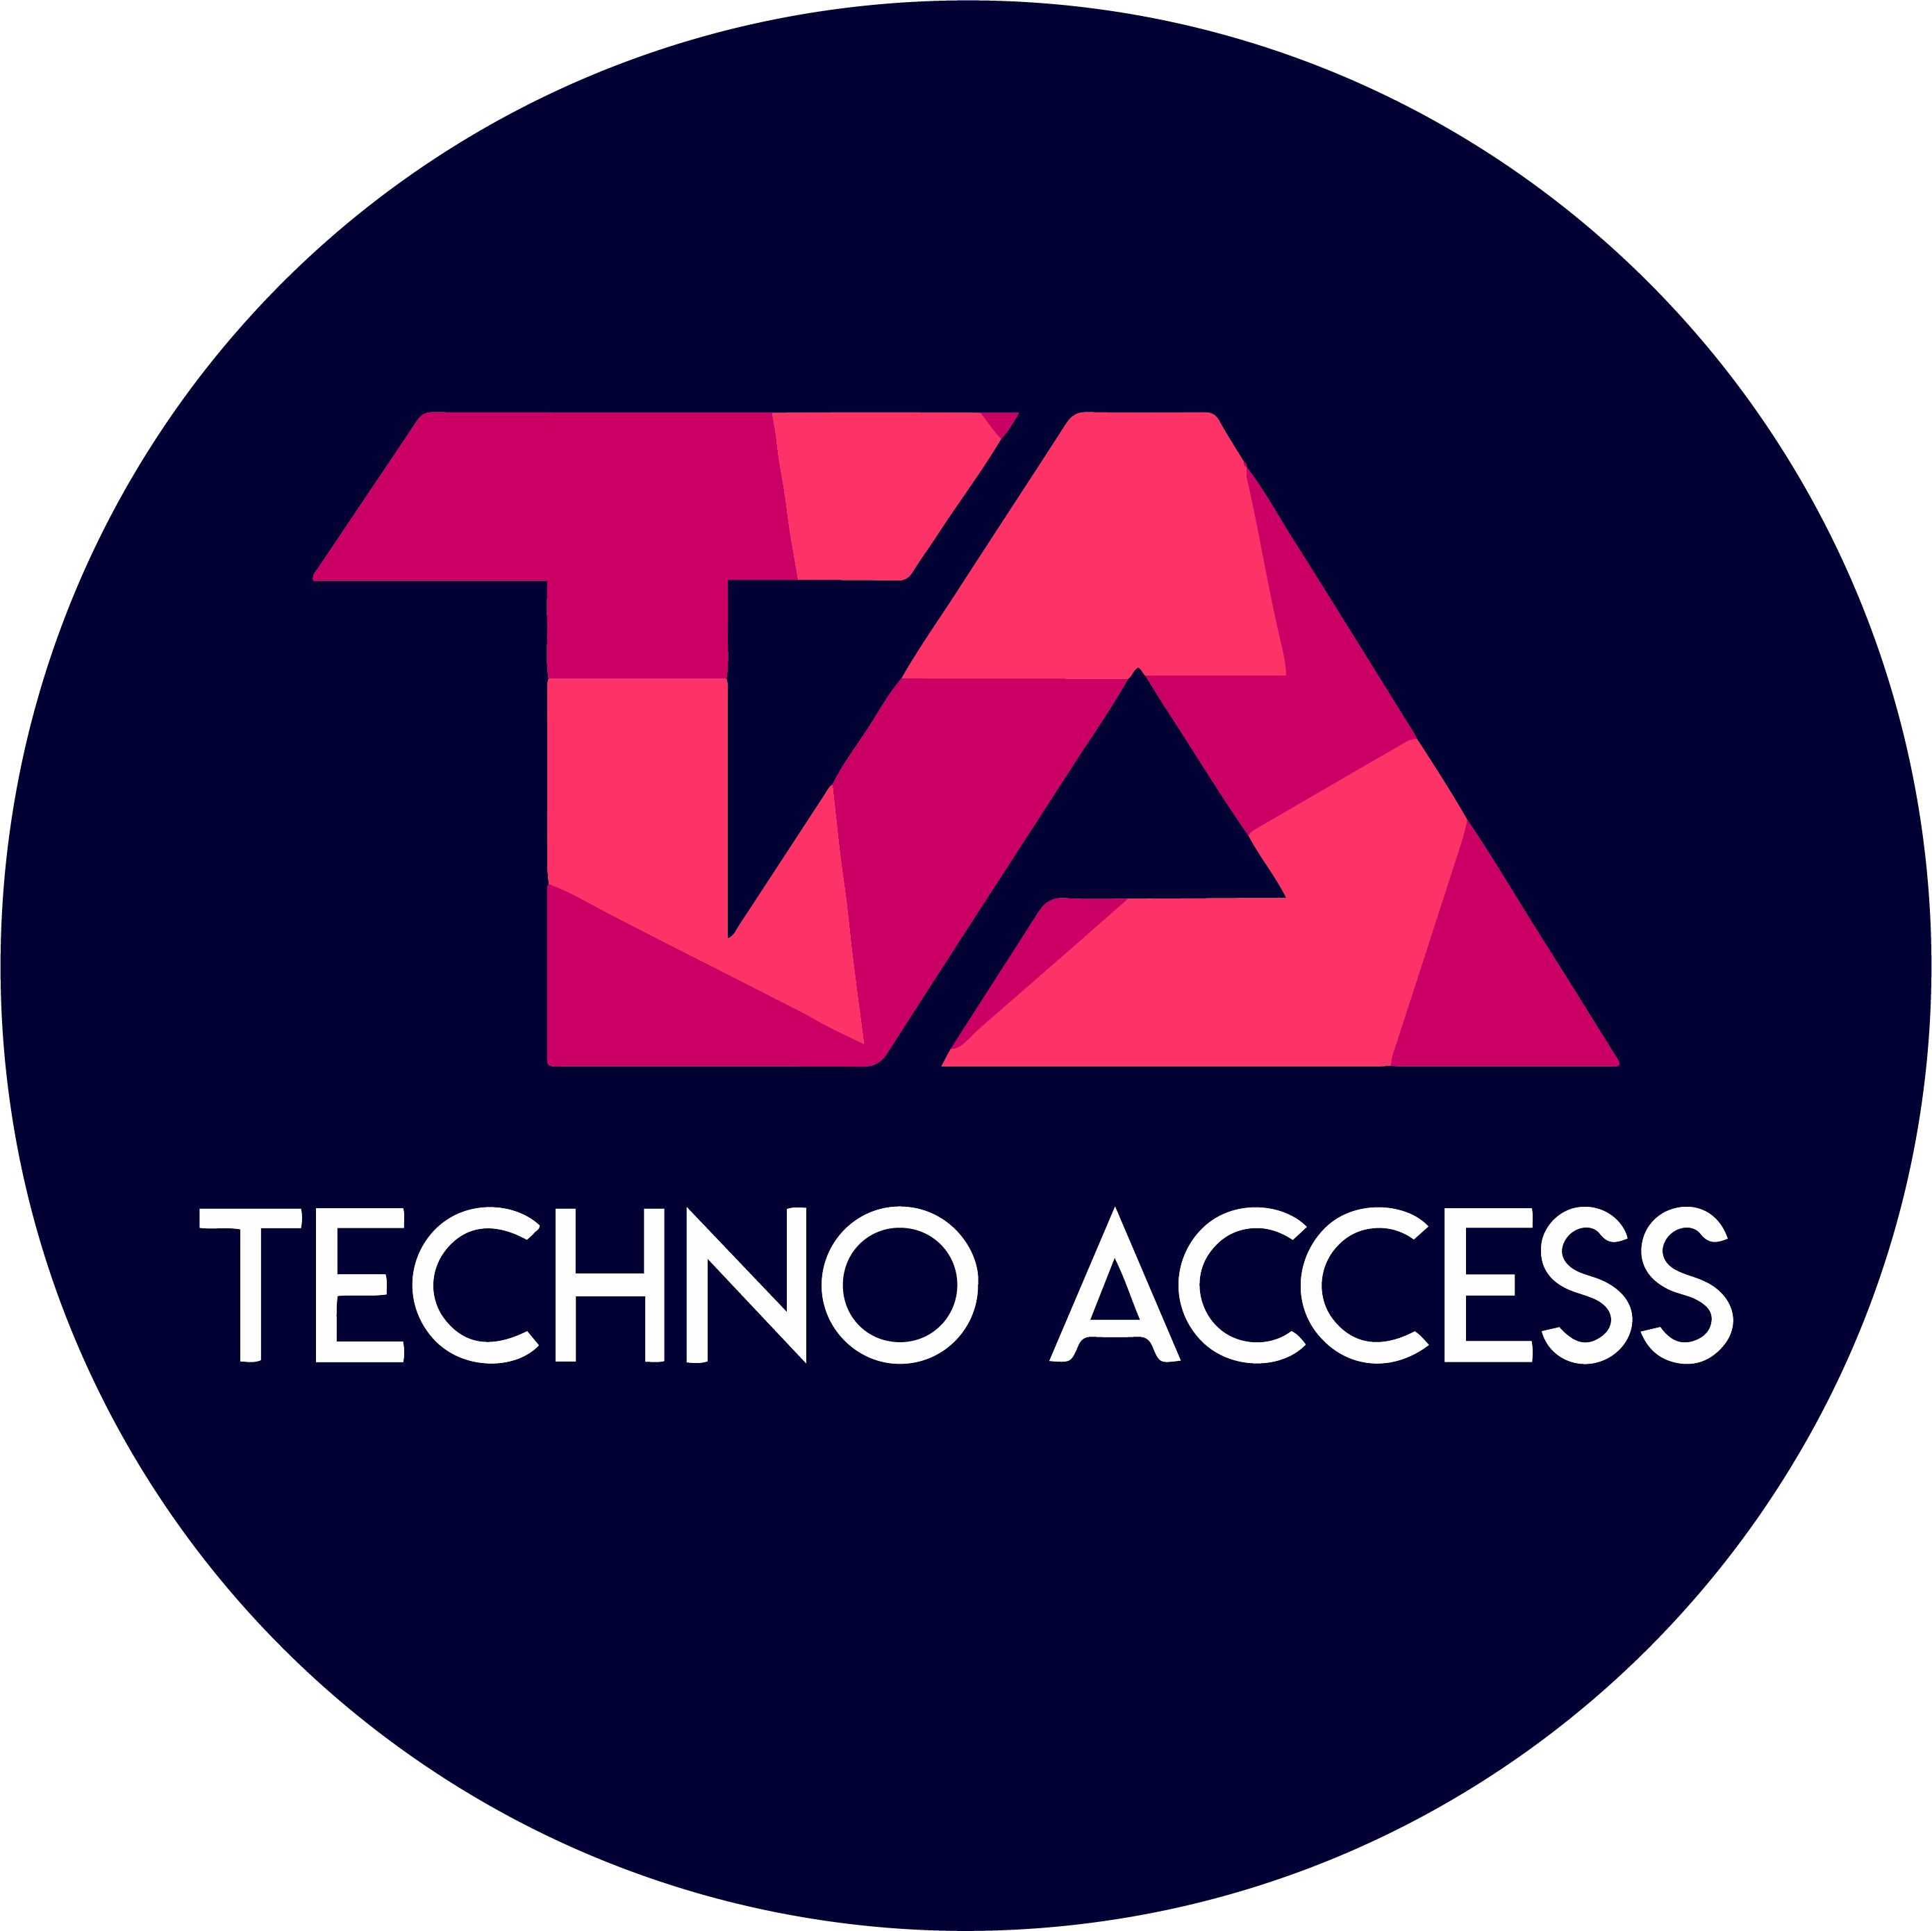 LOGO - TECHNO ACCESS.png (155 KB)